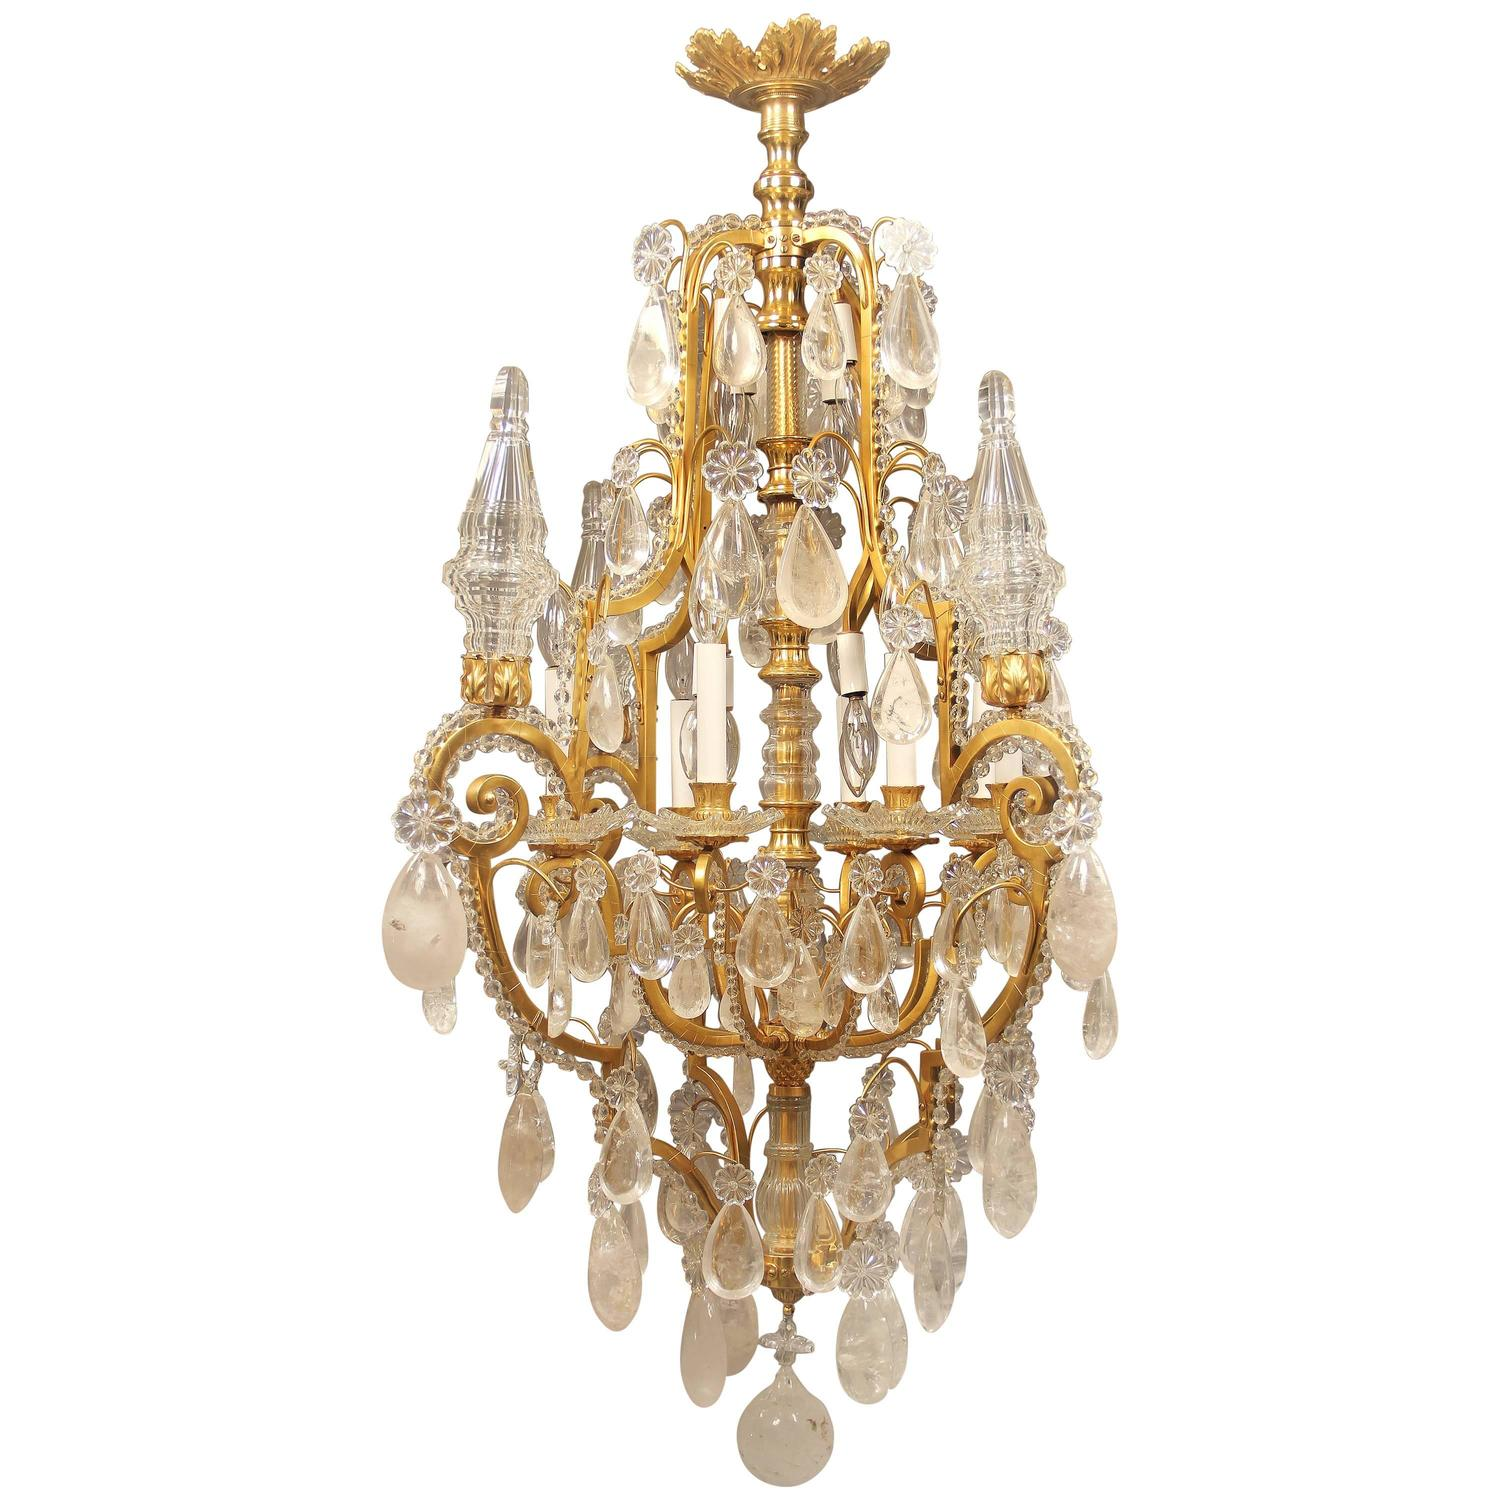 Fantastic Early 20th Century Gilt Bronze And Rock Crystal Chandelier For Sale